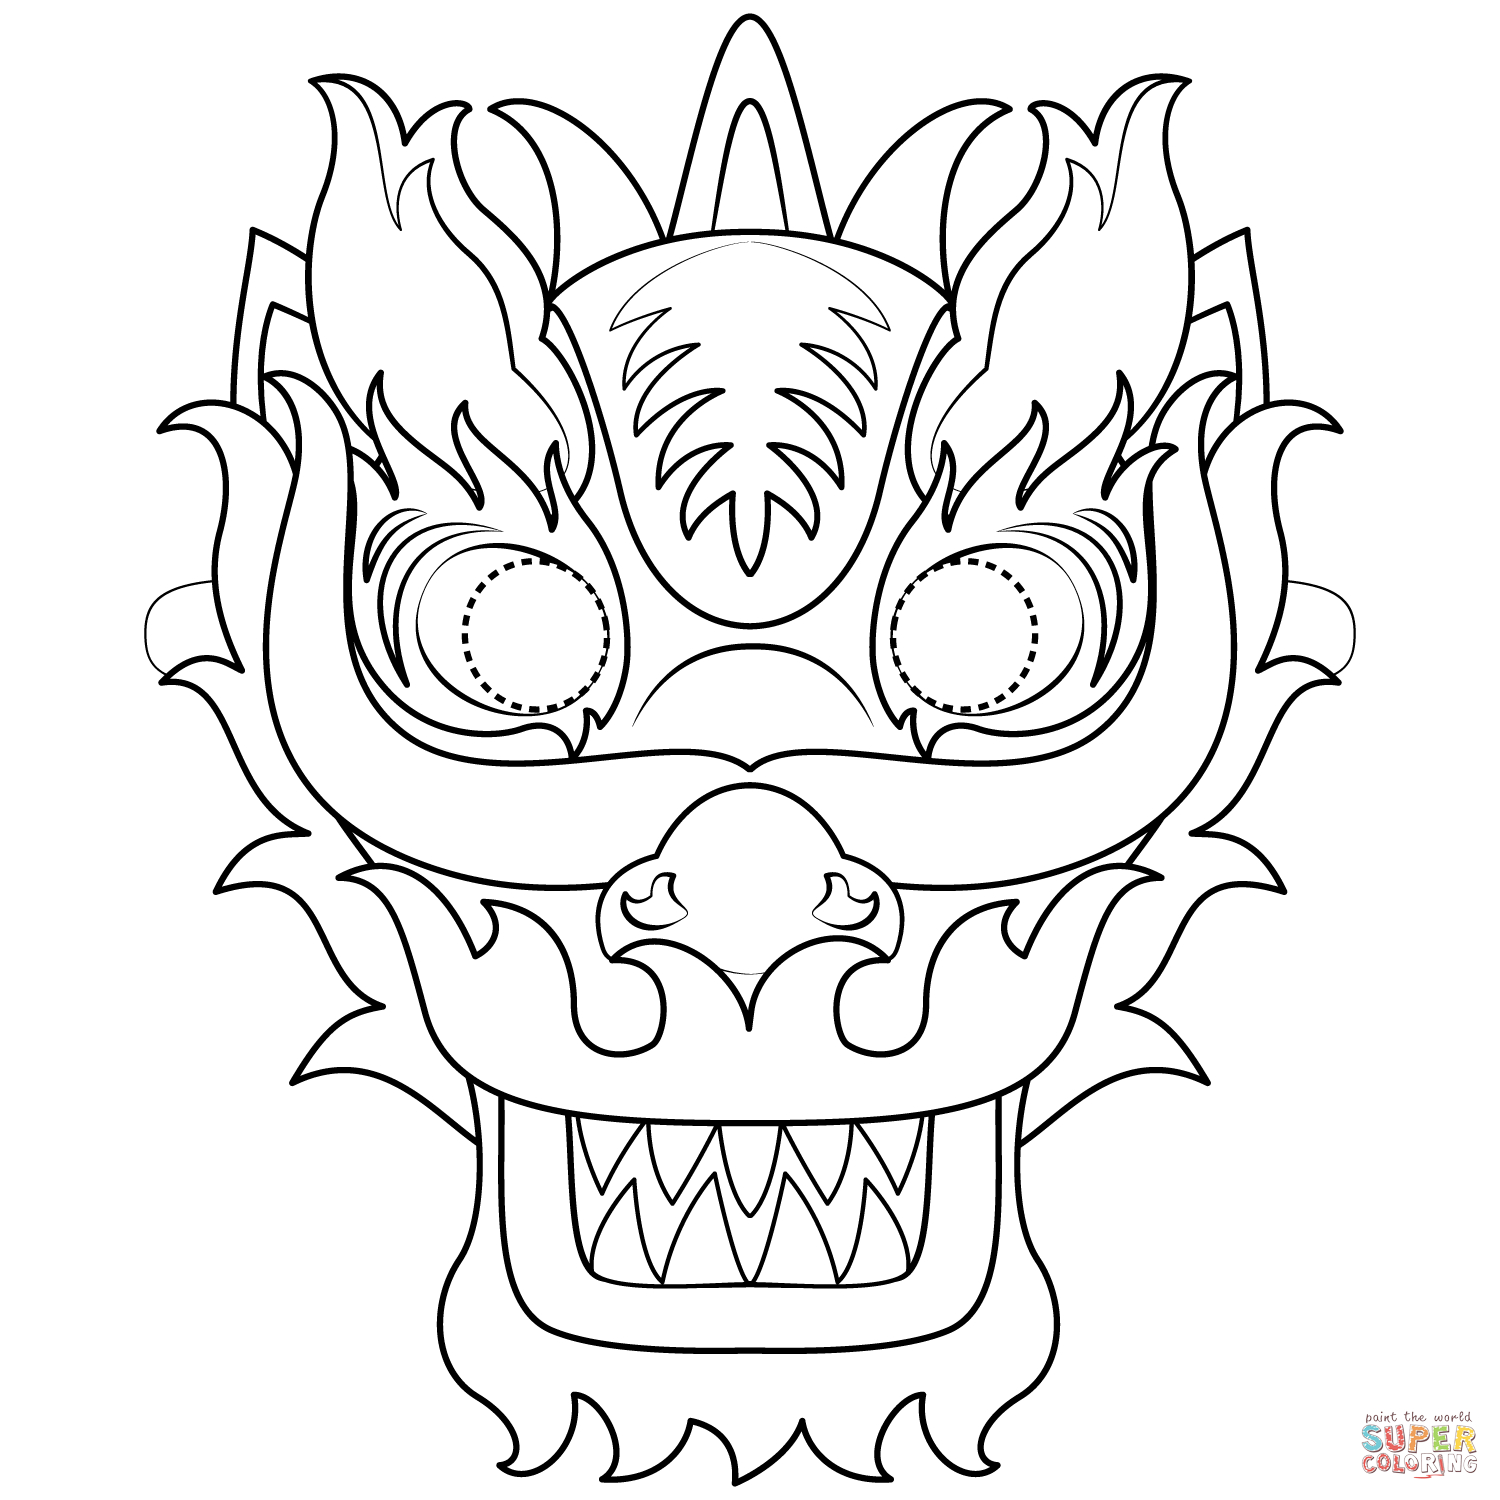 Chinese New Year Dragon Mask Coloring Page   Free Printable Coloring - Dragon Mask Printable Free